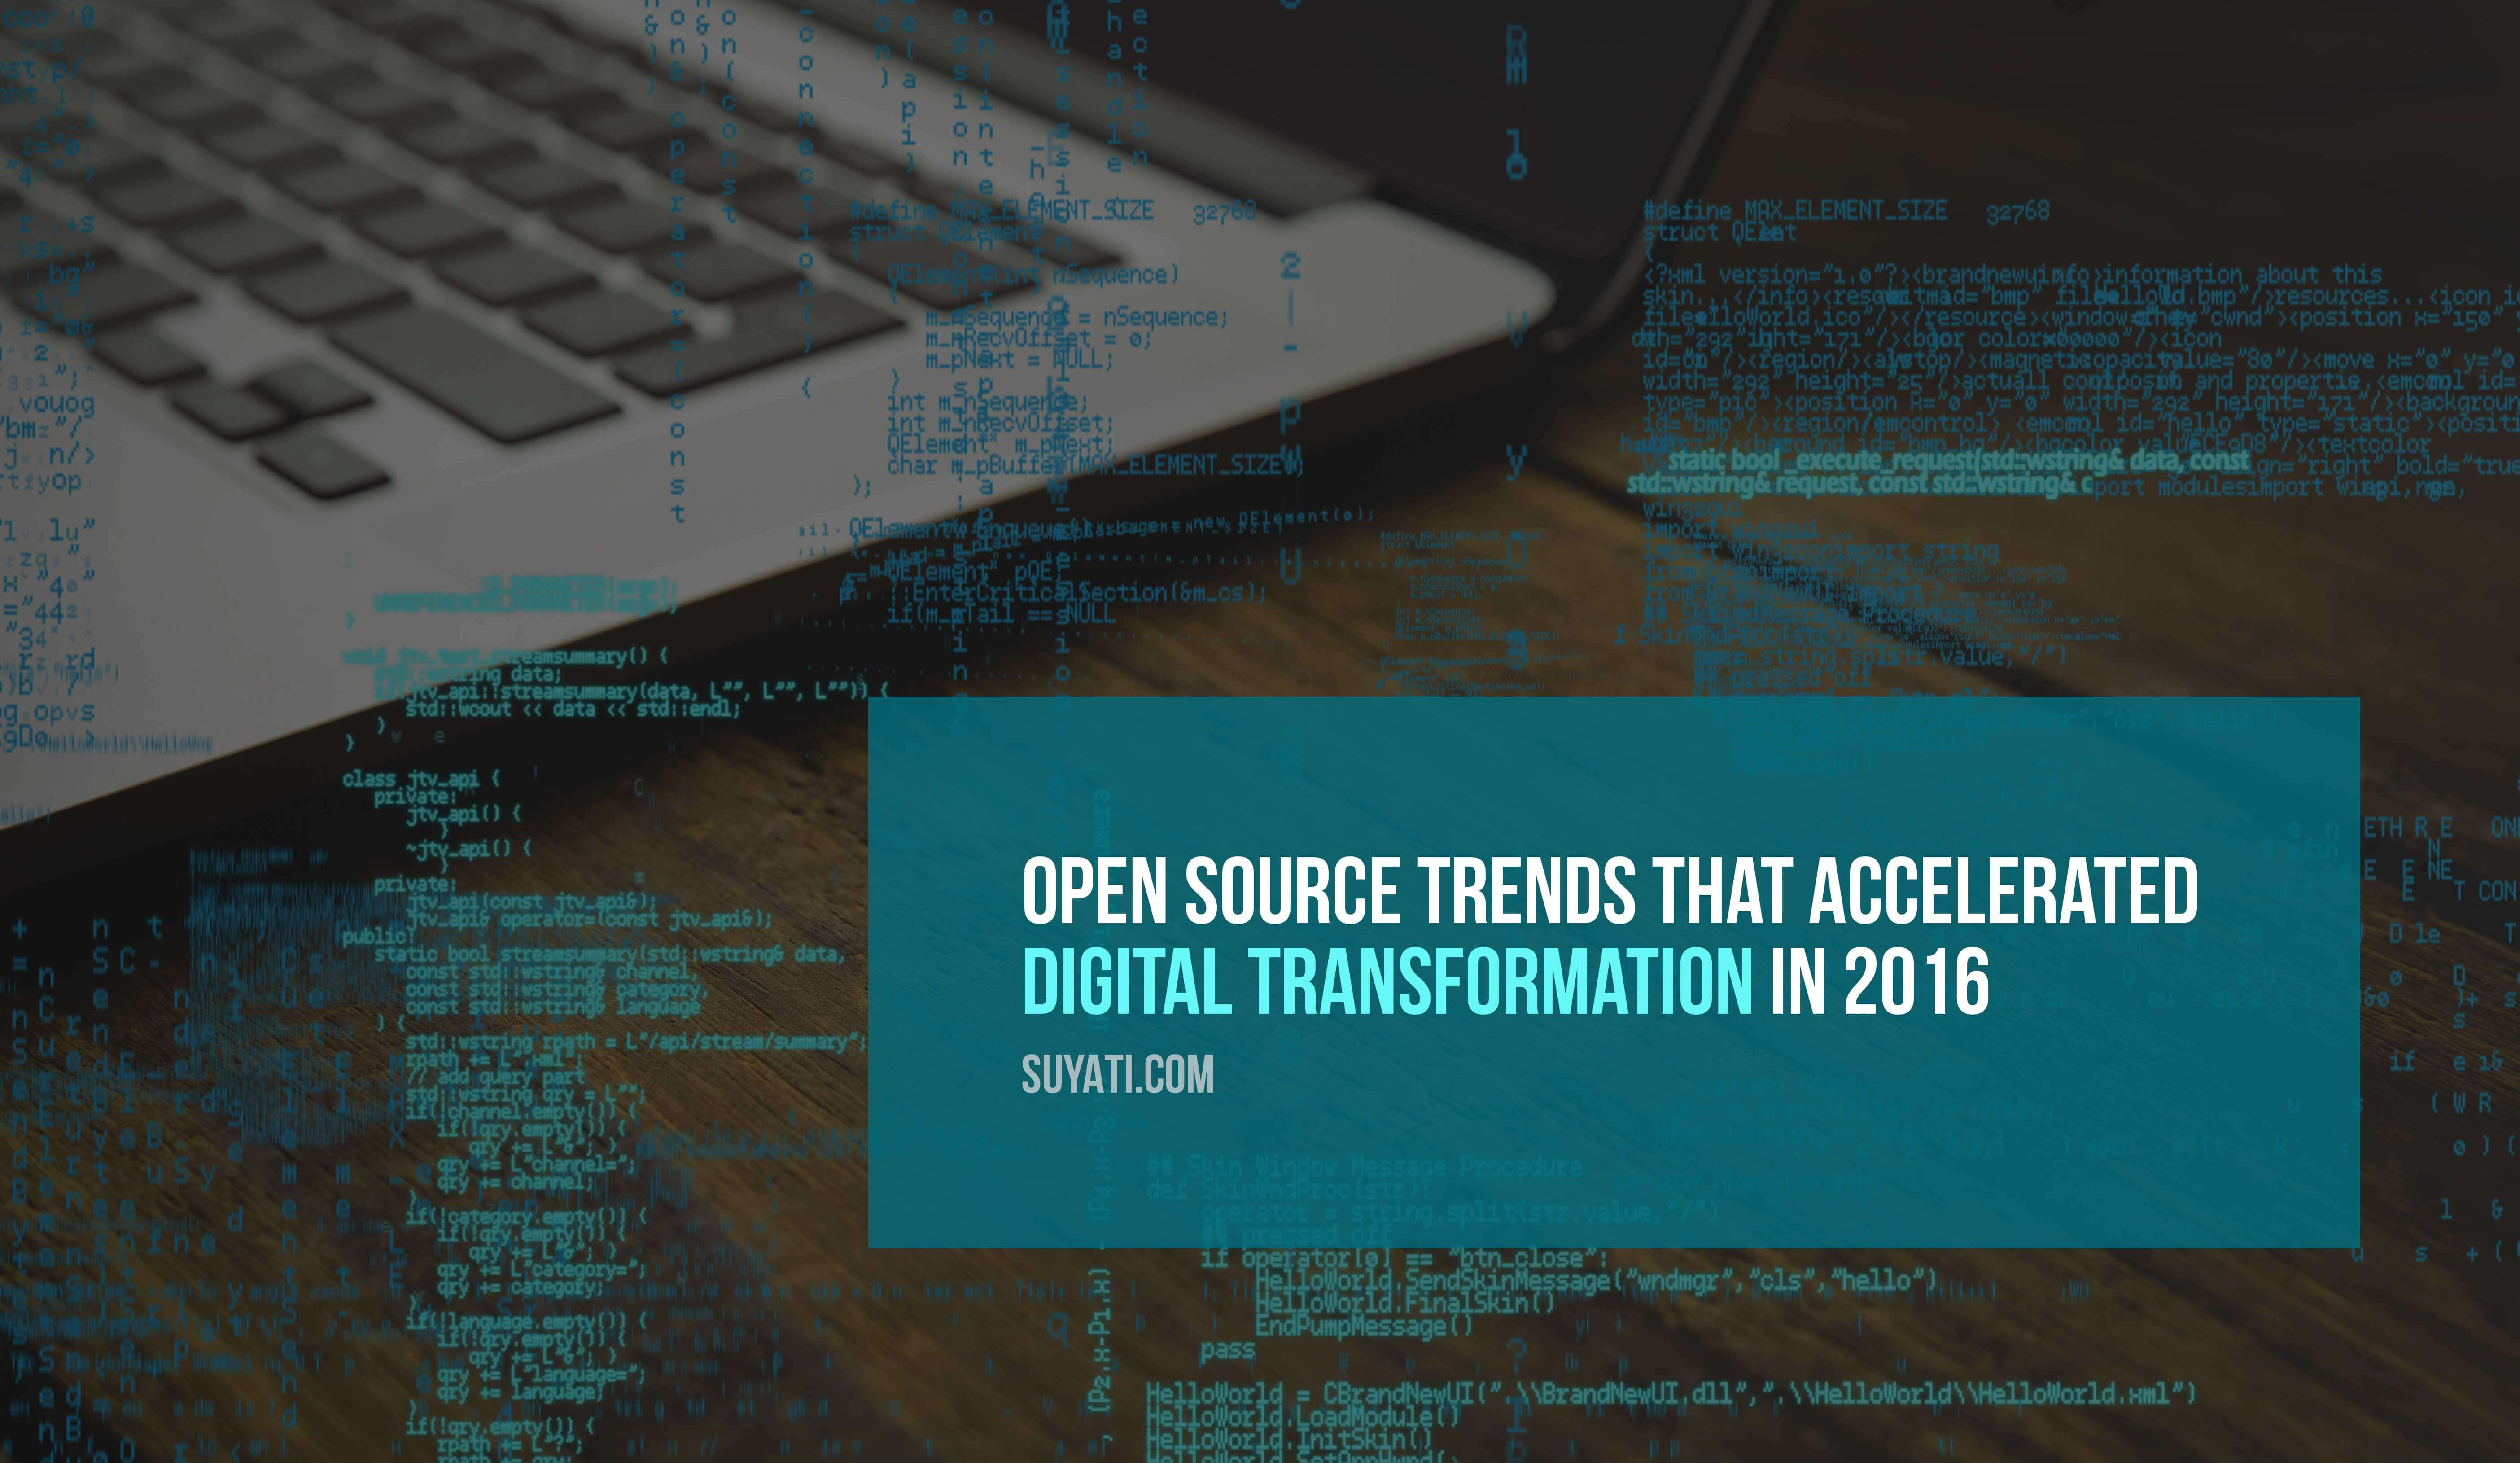 whats-happening-with-open-source-technology-at-the-end-of-2016